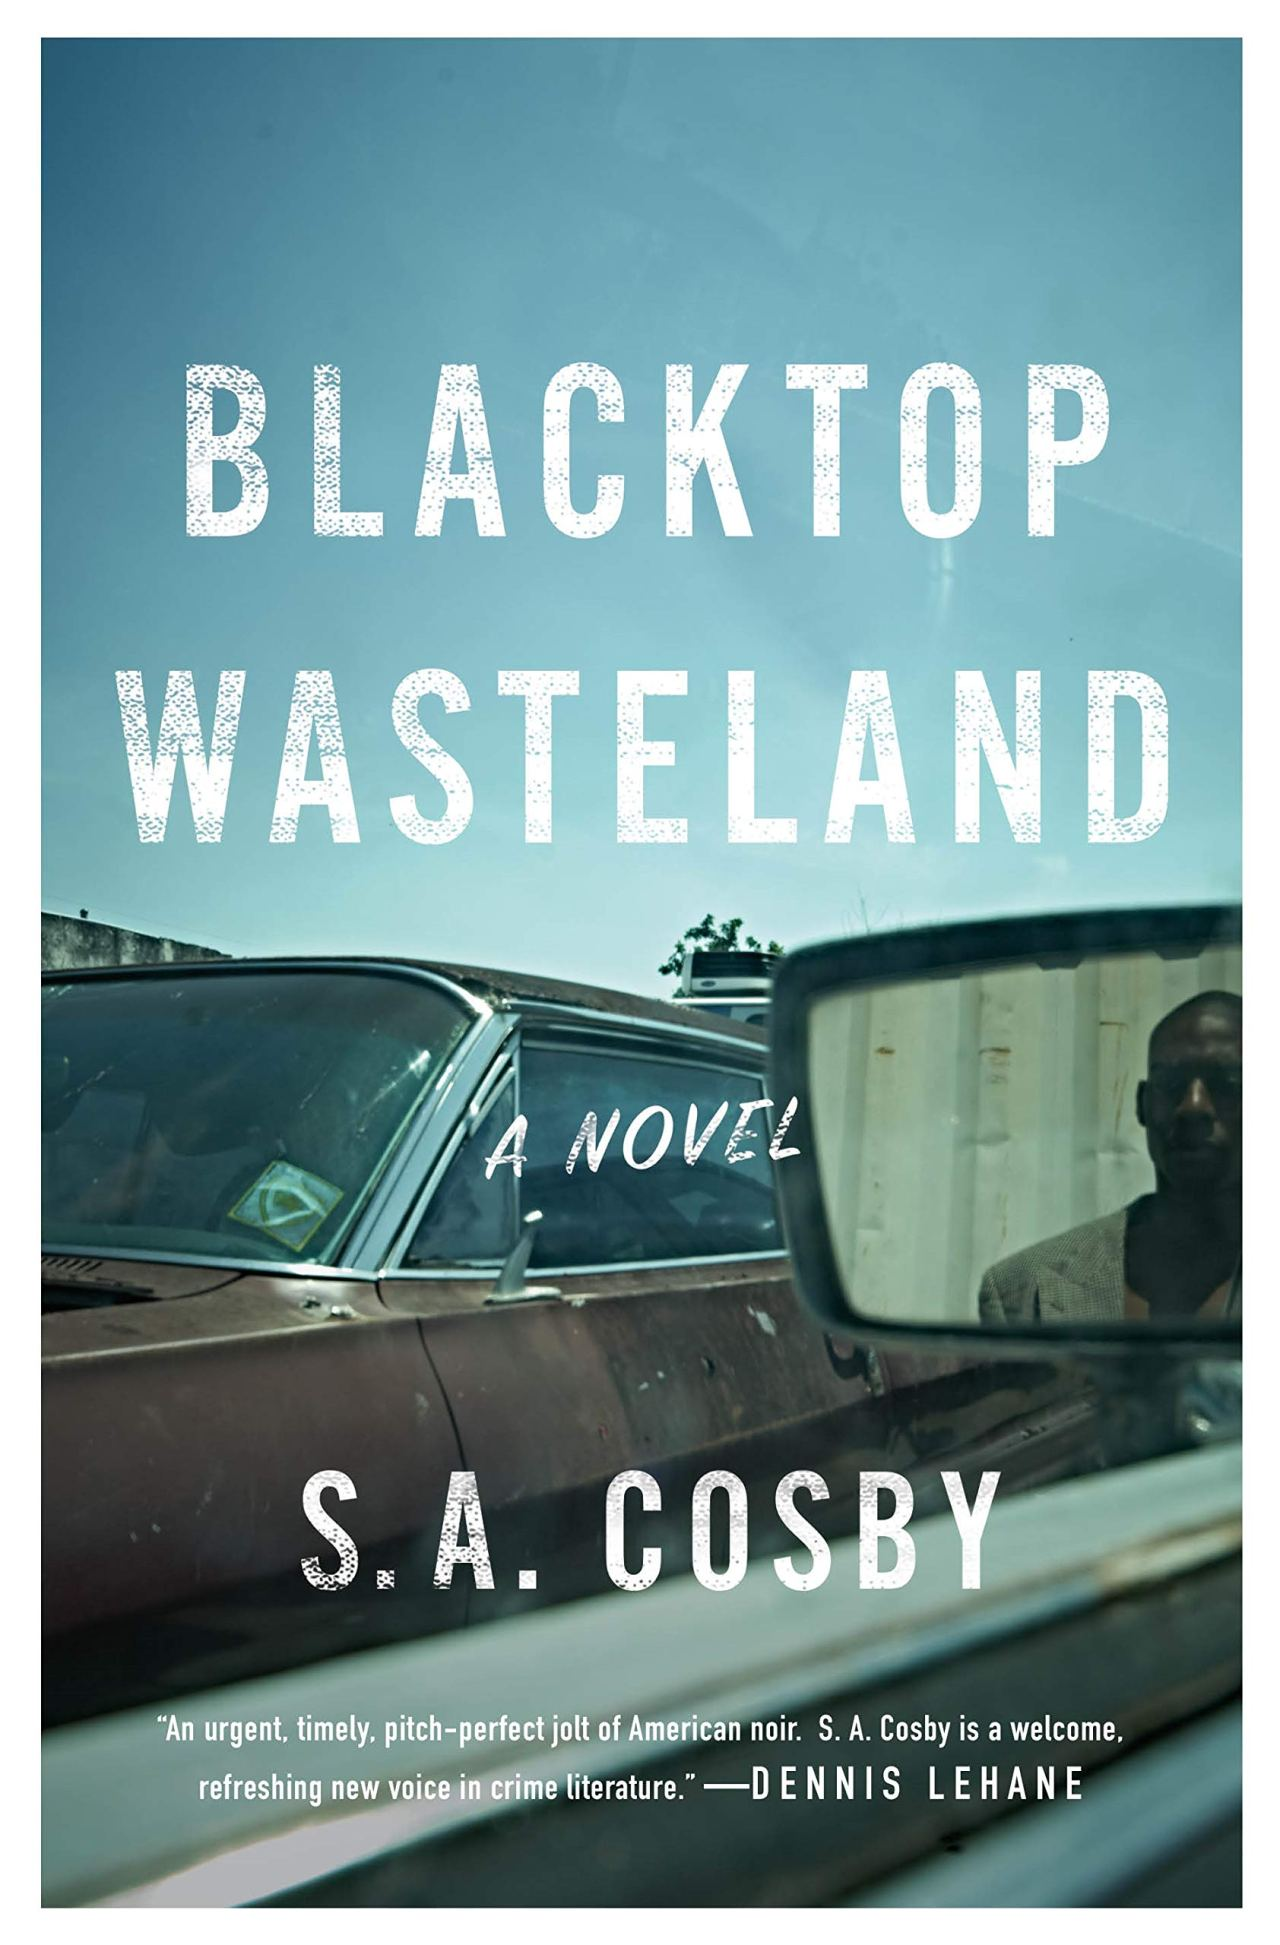 S.A. Cosby: Blacktop Wasteland